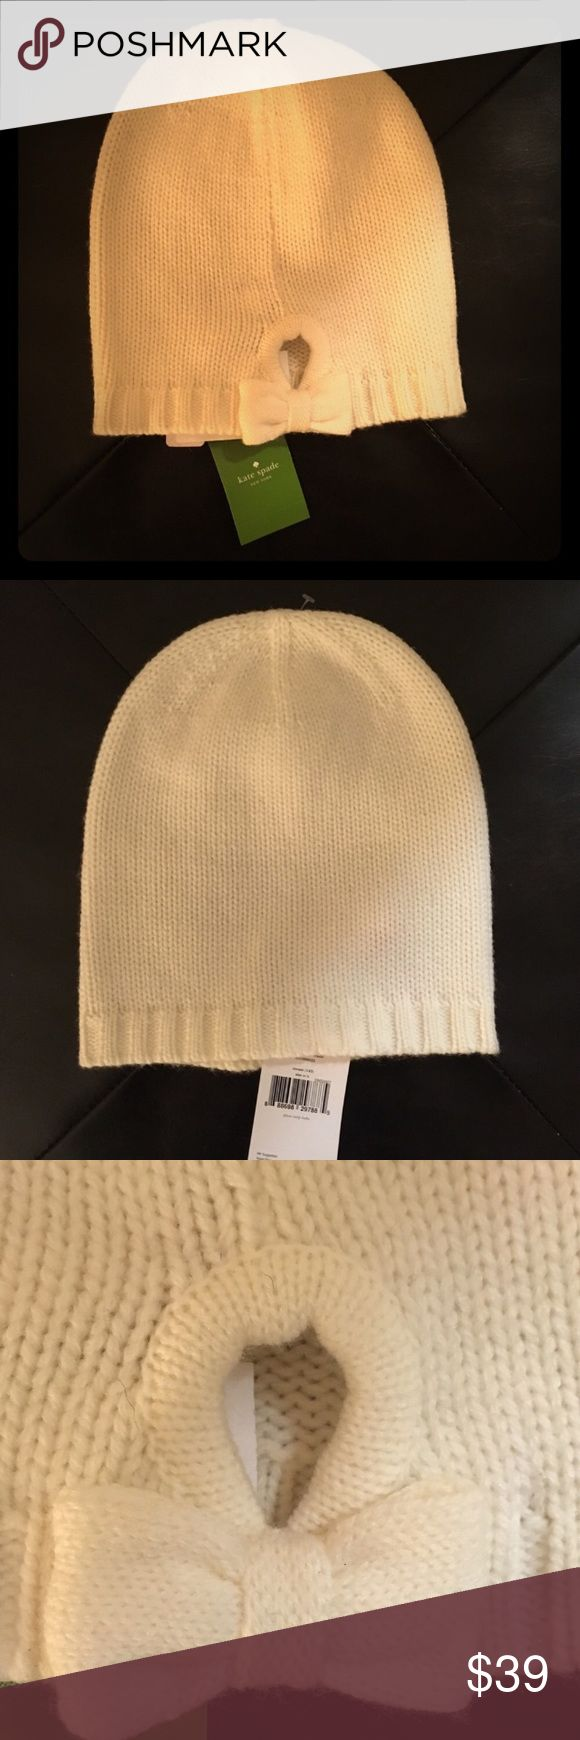 🎀NEW Kate Spade Bow cream beanie hat New with tag. Kate Spade 70% Acrylic 30% Wool Beanie style, Rib Trim and a backside keyhole and Bow detail. Color: cream.    🛍BUNDLE=SAVE  🚫TRADE  💯Authentic   🖲USE BLUE OFFER BUTTON TO NEGOTIATE   ✔️Ask Questions Not Answered in Description--Want You to Be Happy! kate spade Accessories Hats